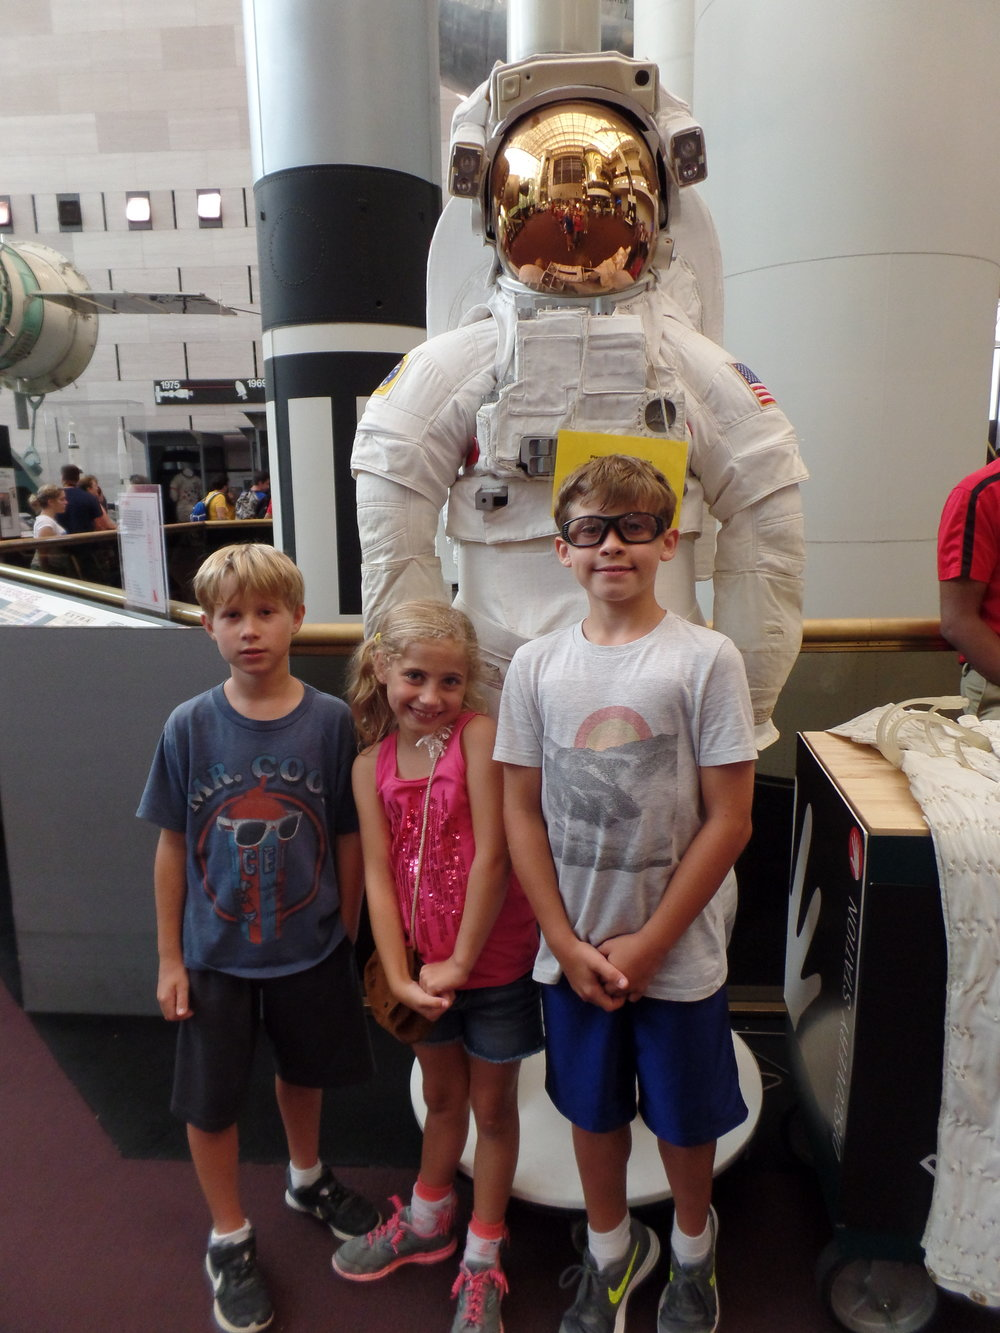 We went to the Air and Space Museum. The kids saw a real space suit.